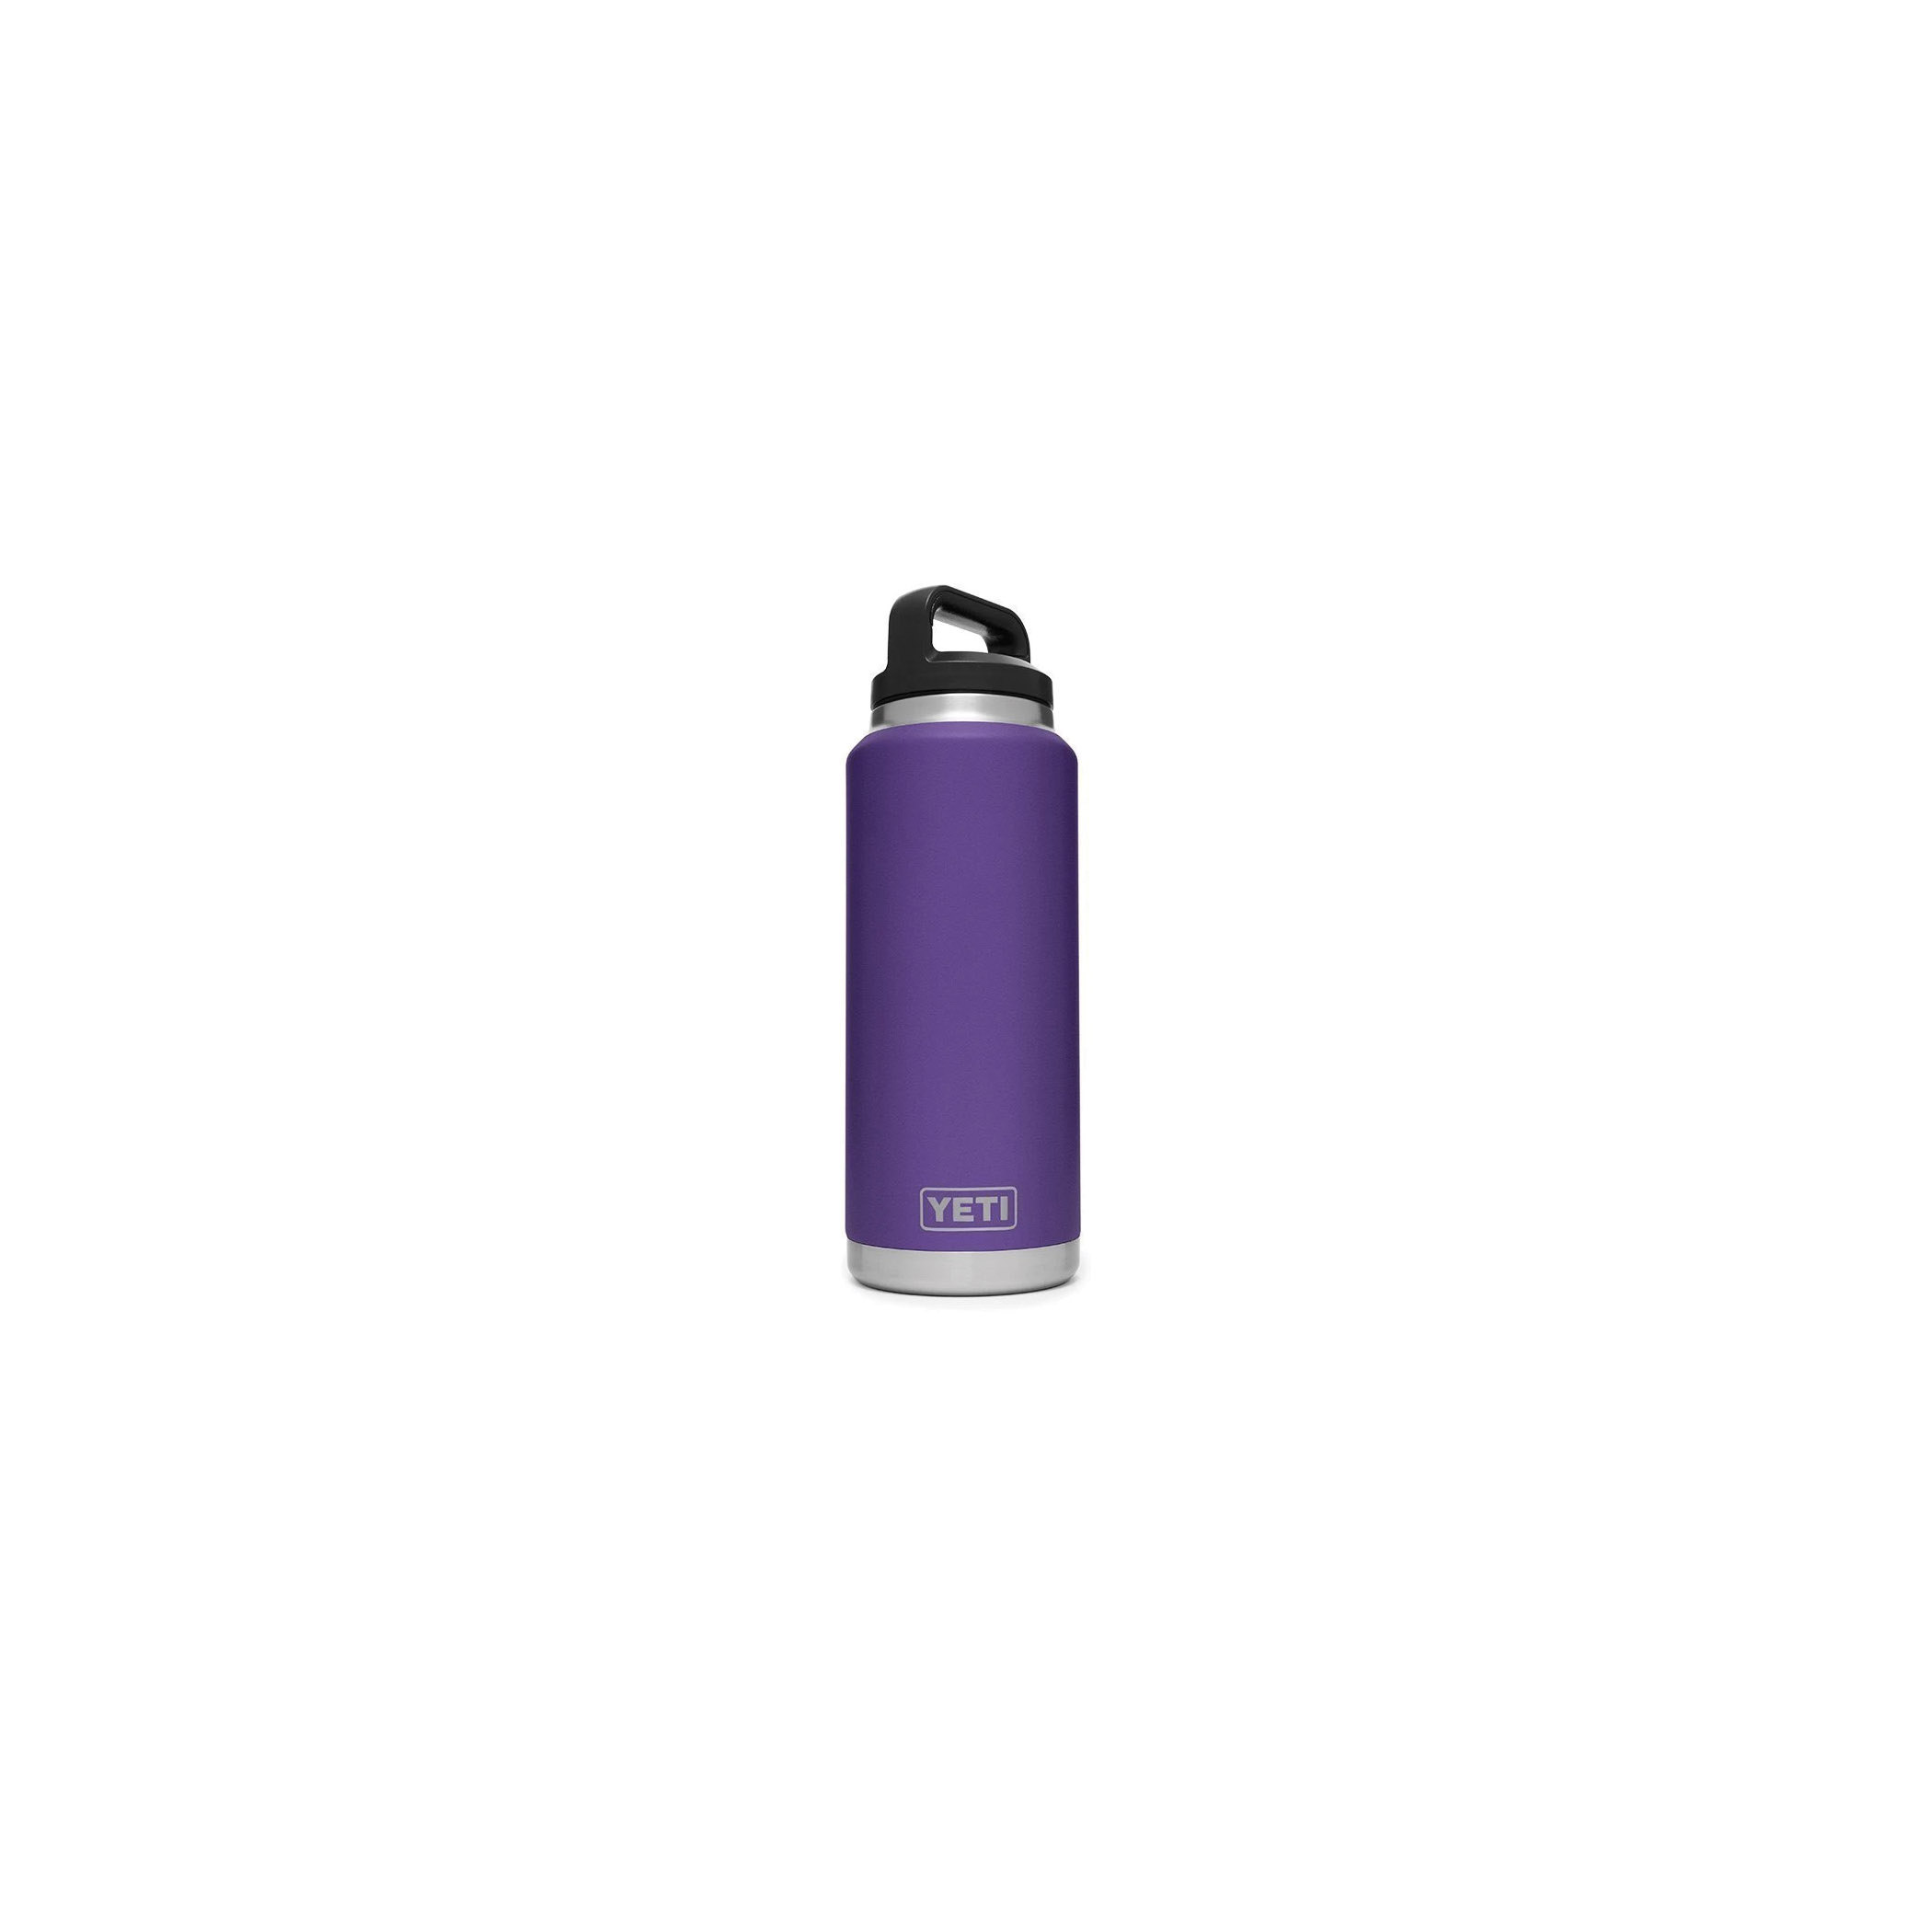 Picture of YETI Rambler 21071500129 Bottle, 36 fl-oz Capacity, Stainless Steel, Peak Purple